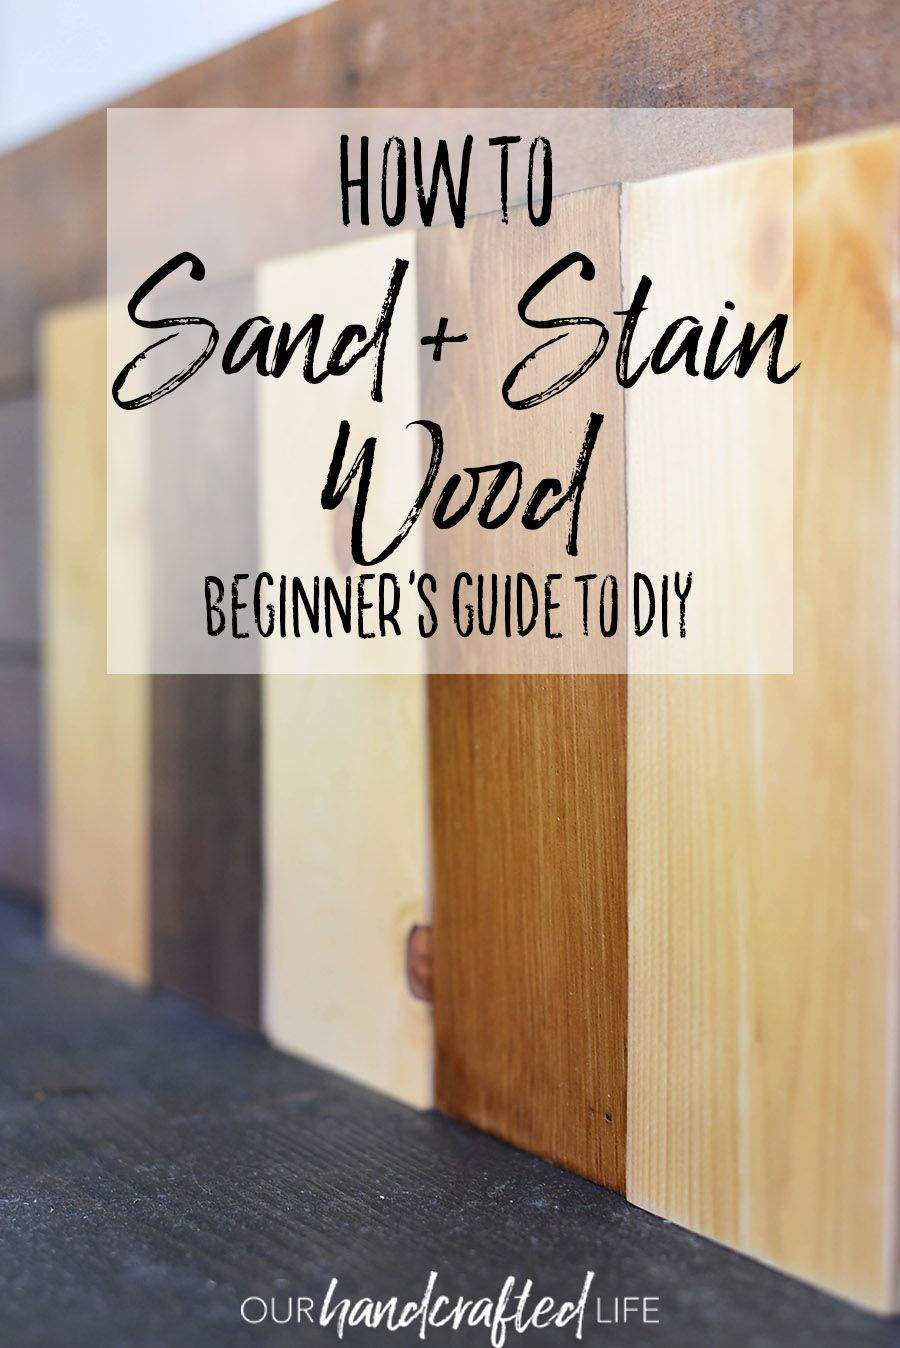 Start With The Basics A Beginners Guide To Diy Learn Best Way Sand Prep And Stain Wood This Complete Woodworking For